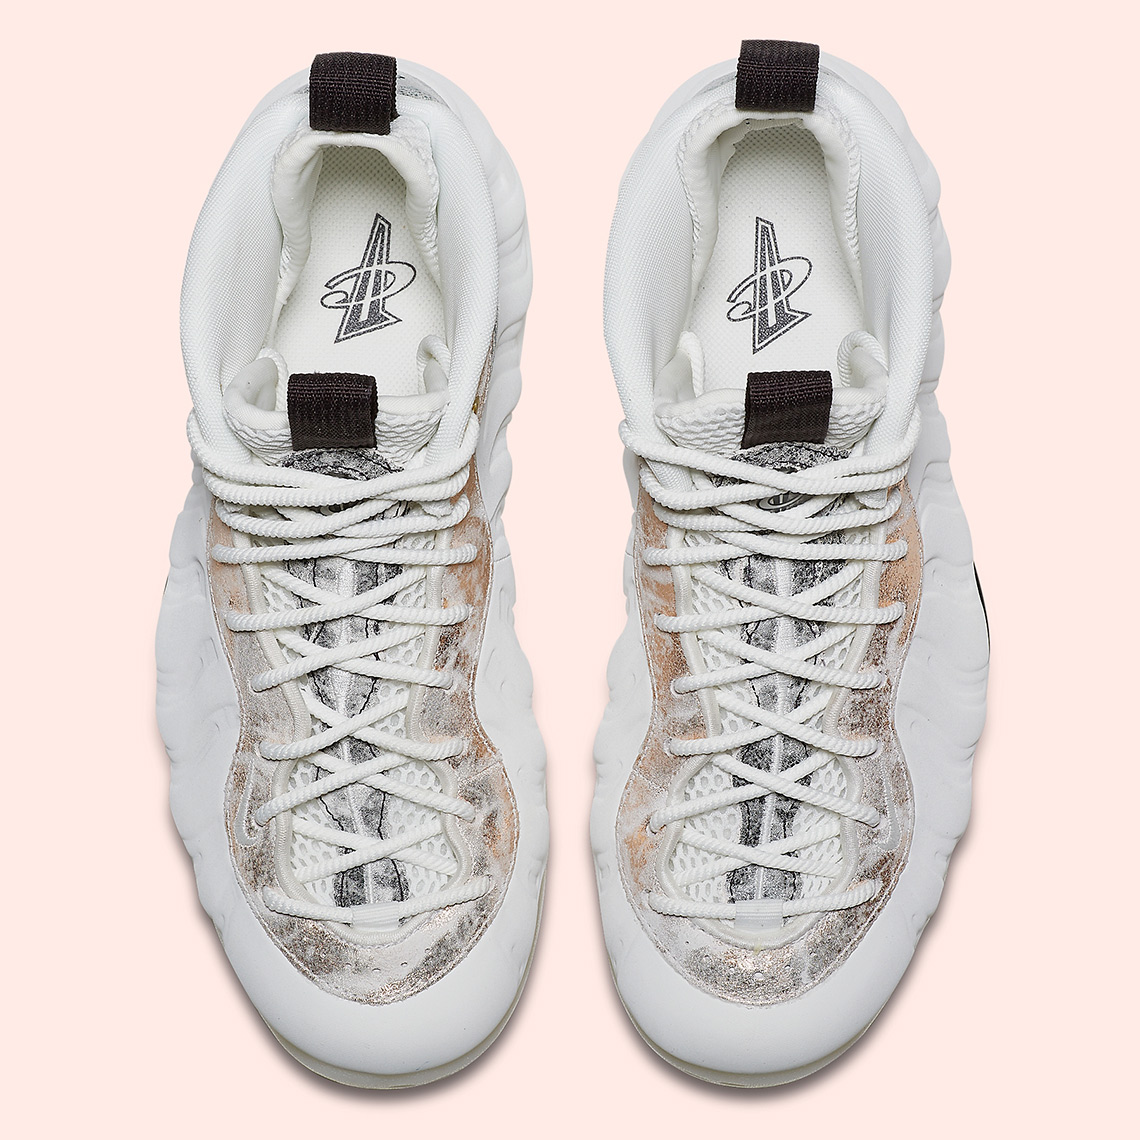 premium selection c1351 5253c Nike Air Foamposite One Summit White AA3963-101   SneakerNews.com